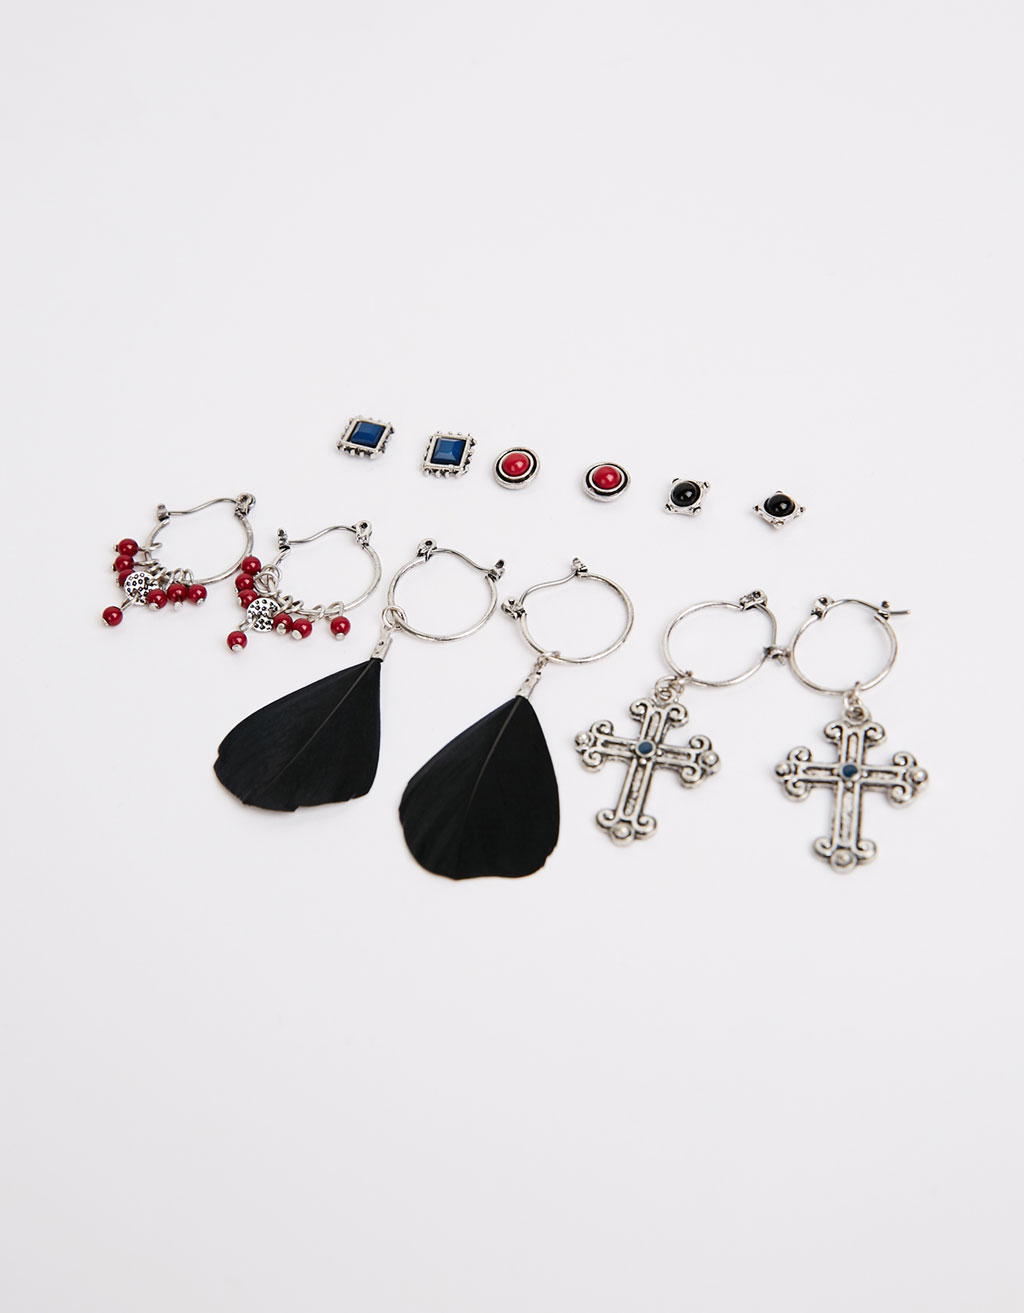 Combinable earrings (set of 6)